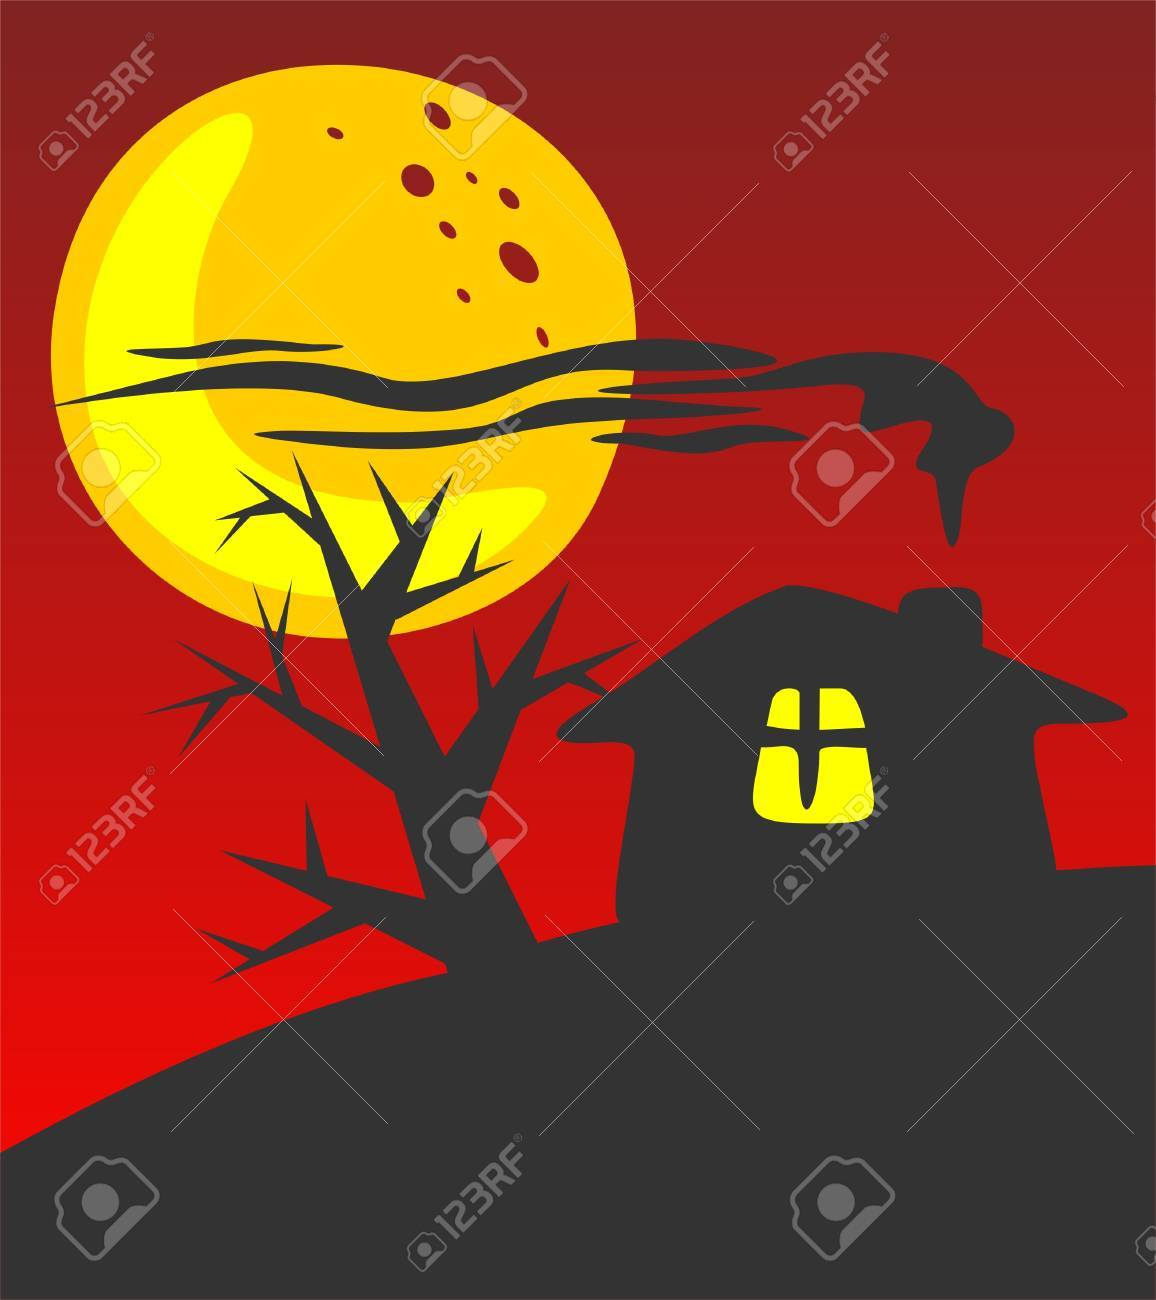 Rural house silhouette on a red background. Halloween illustration. Stock Vector - 3565327